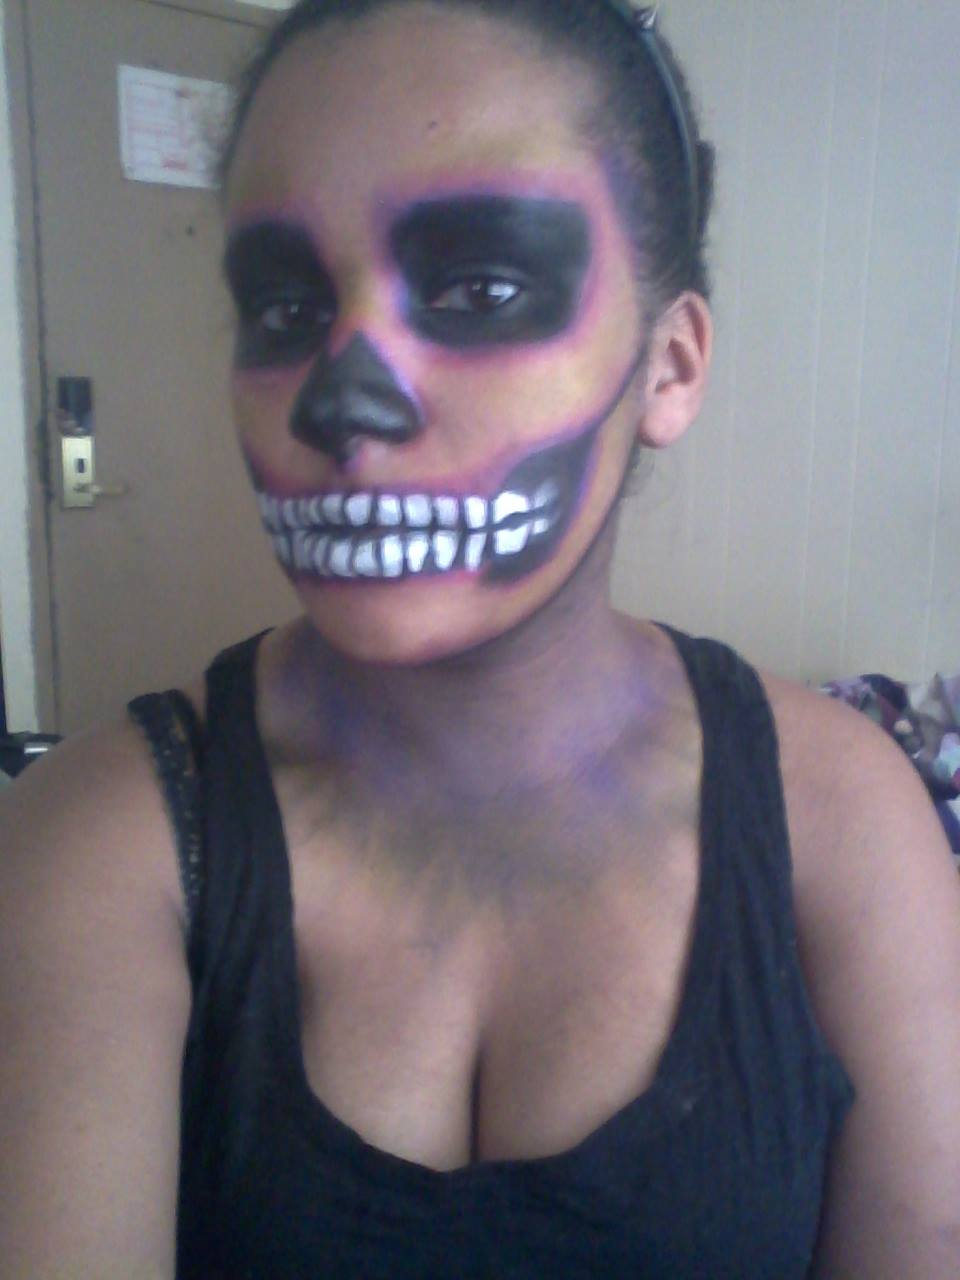 A woman with Halloween makeup on.